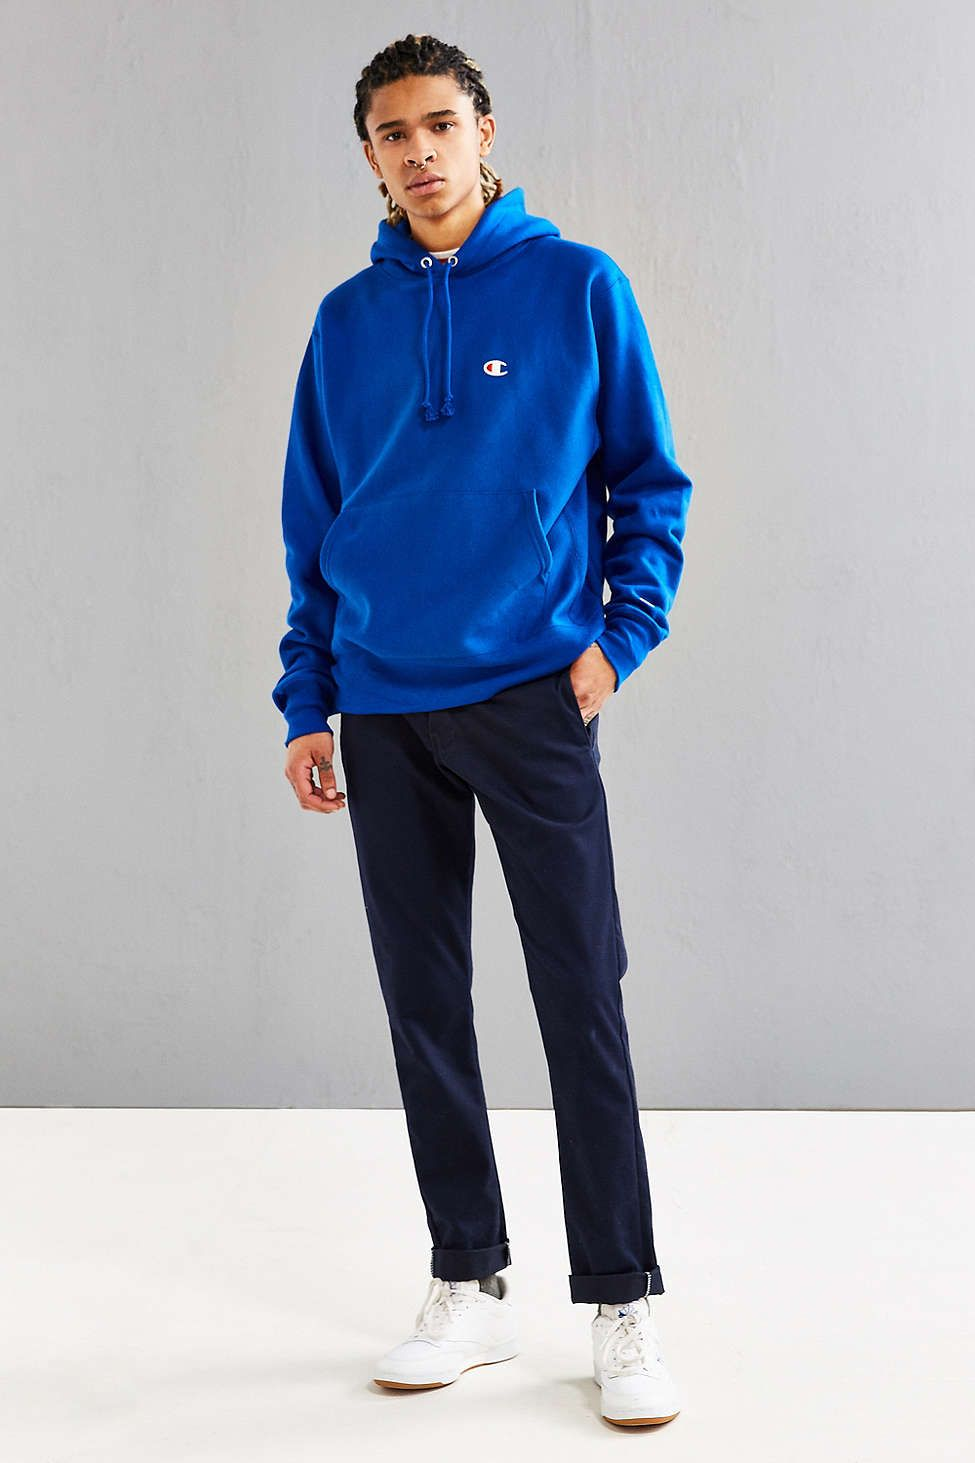 6927e344a097 Champion Reverse Weave Hoodie Sweatshirt - Urban Outfitters